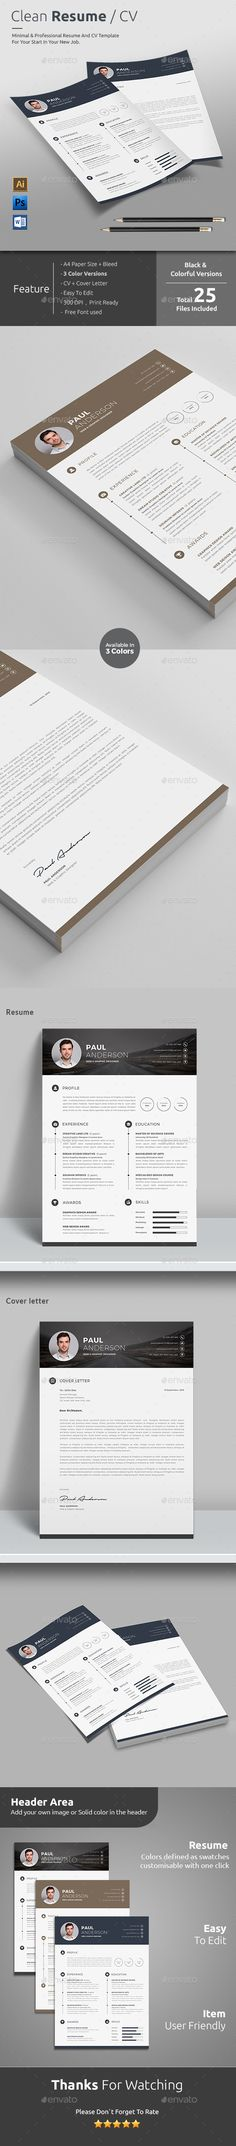 Resume Cv template, Resume cv and Psd templates - resume download in word